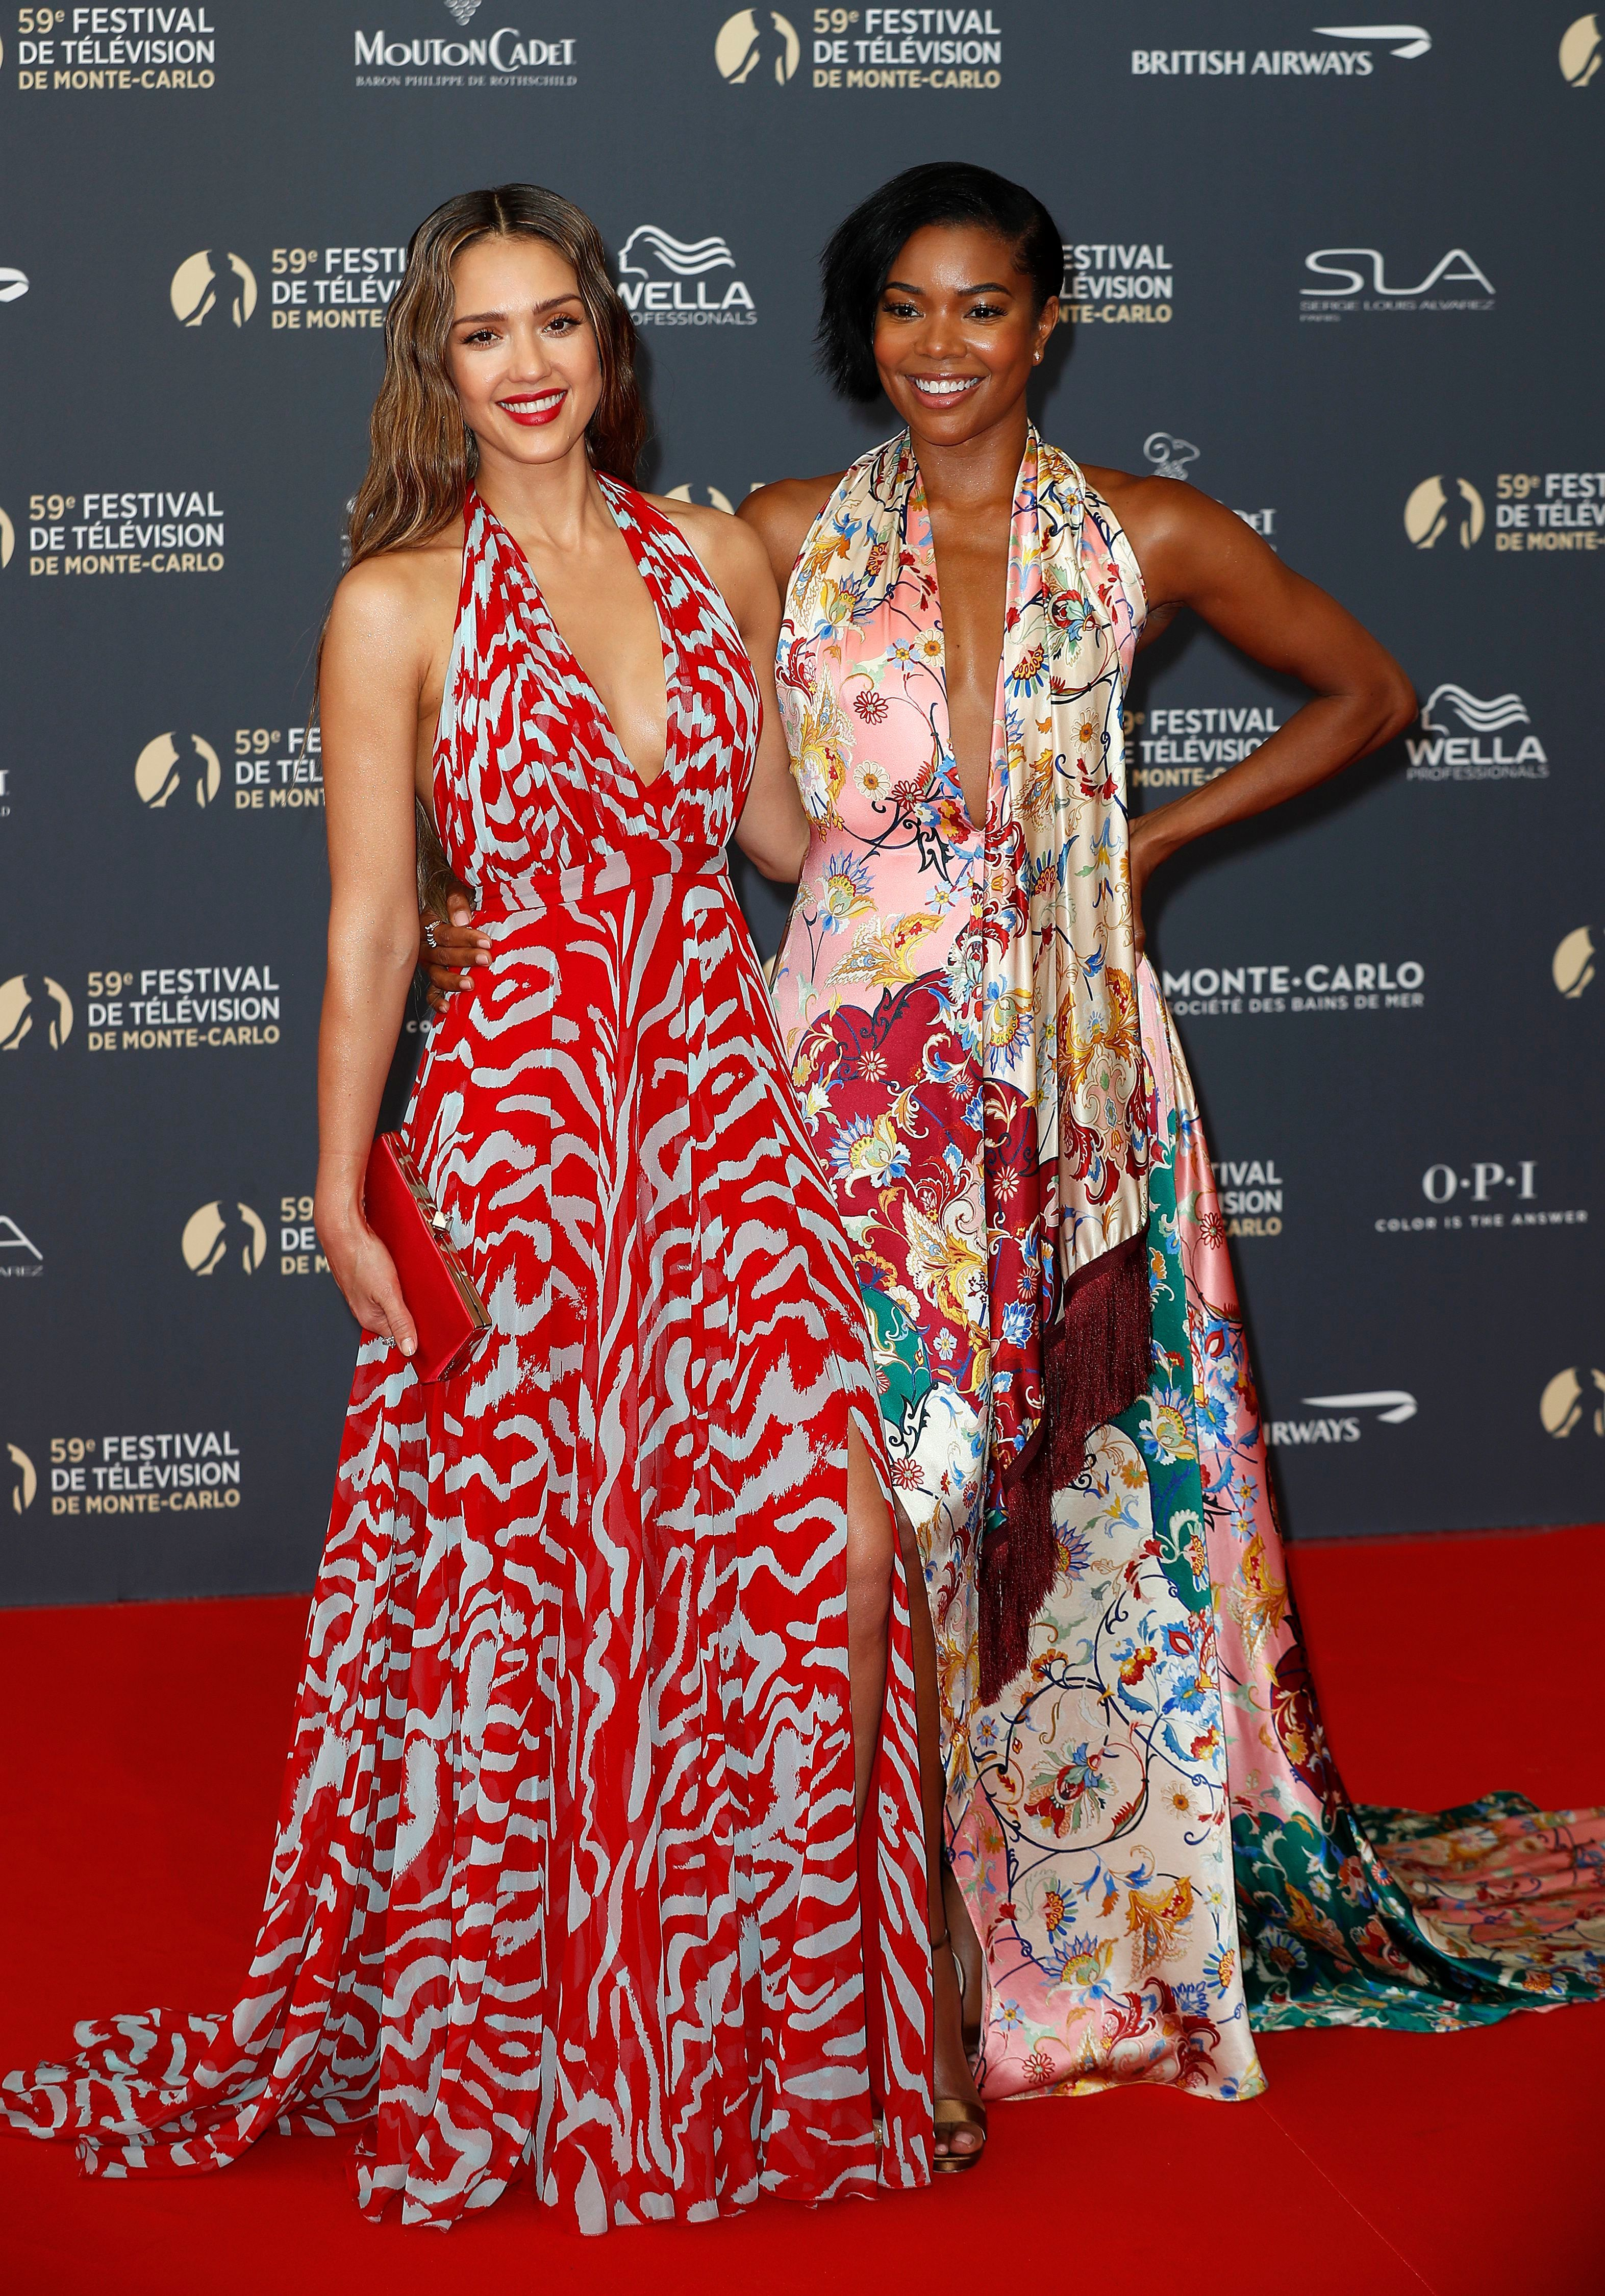 Jessica Alba and Gabrielle Union pose on the red carpet while arriving for the opening ceremony of the 59th Monte Carlo Television Festival in Monaco on June 14, 2019.